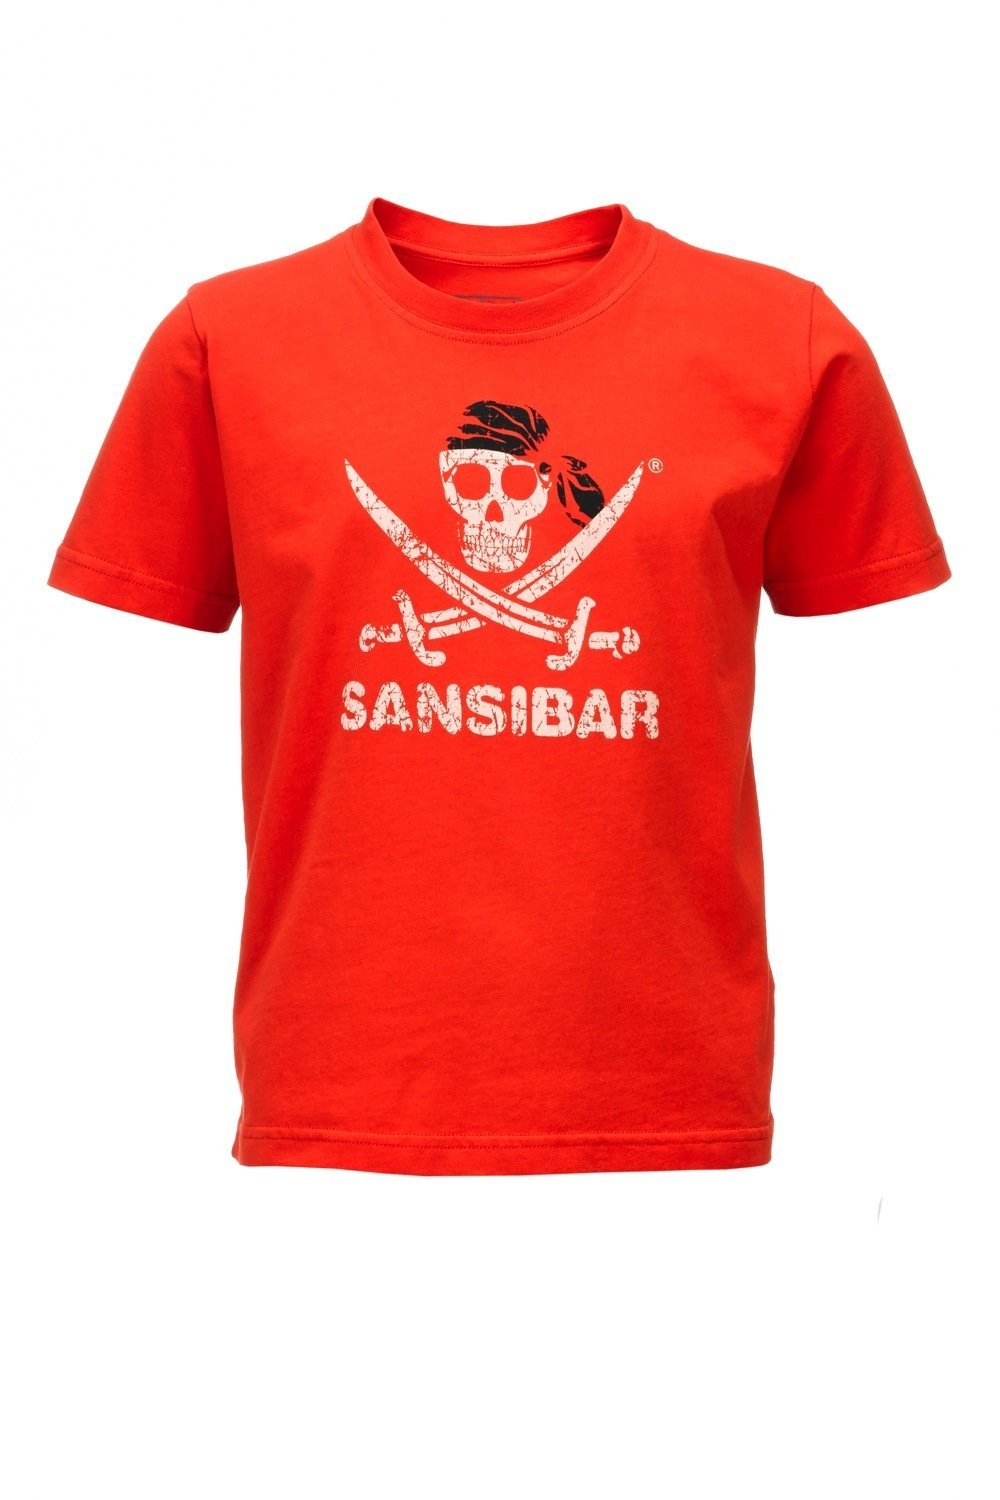 Kinder T-Shirt SKULL , Grenadine, Gr. 152/158